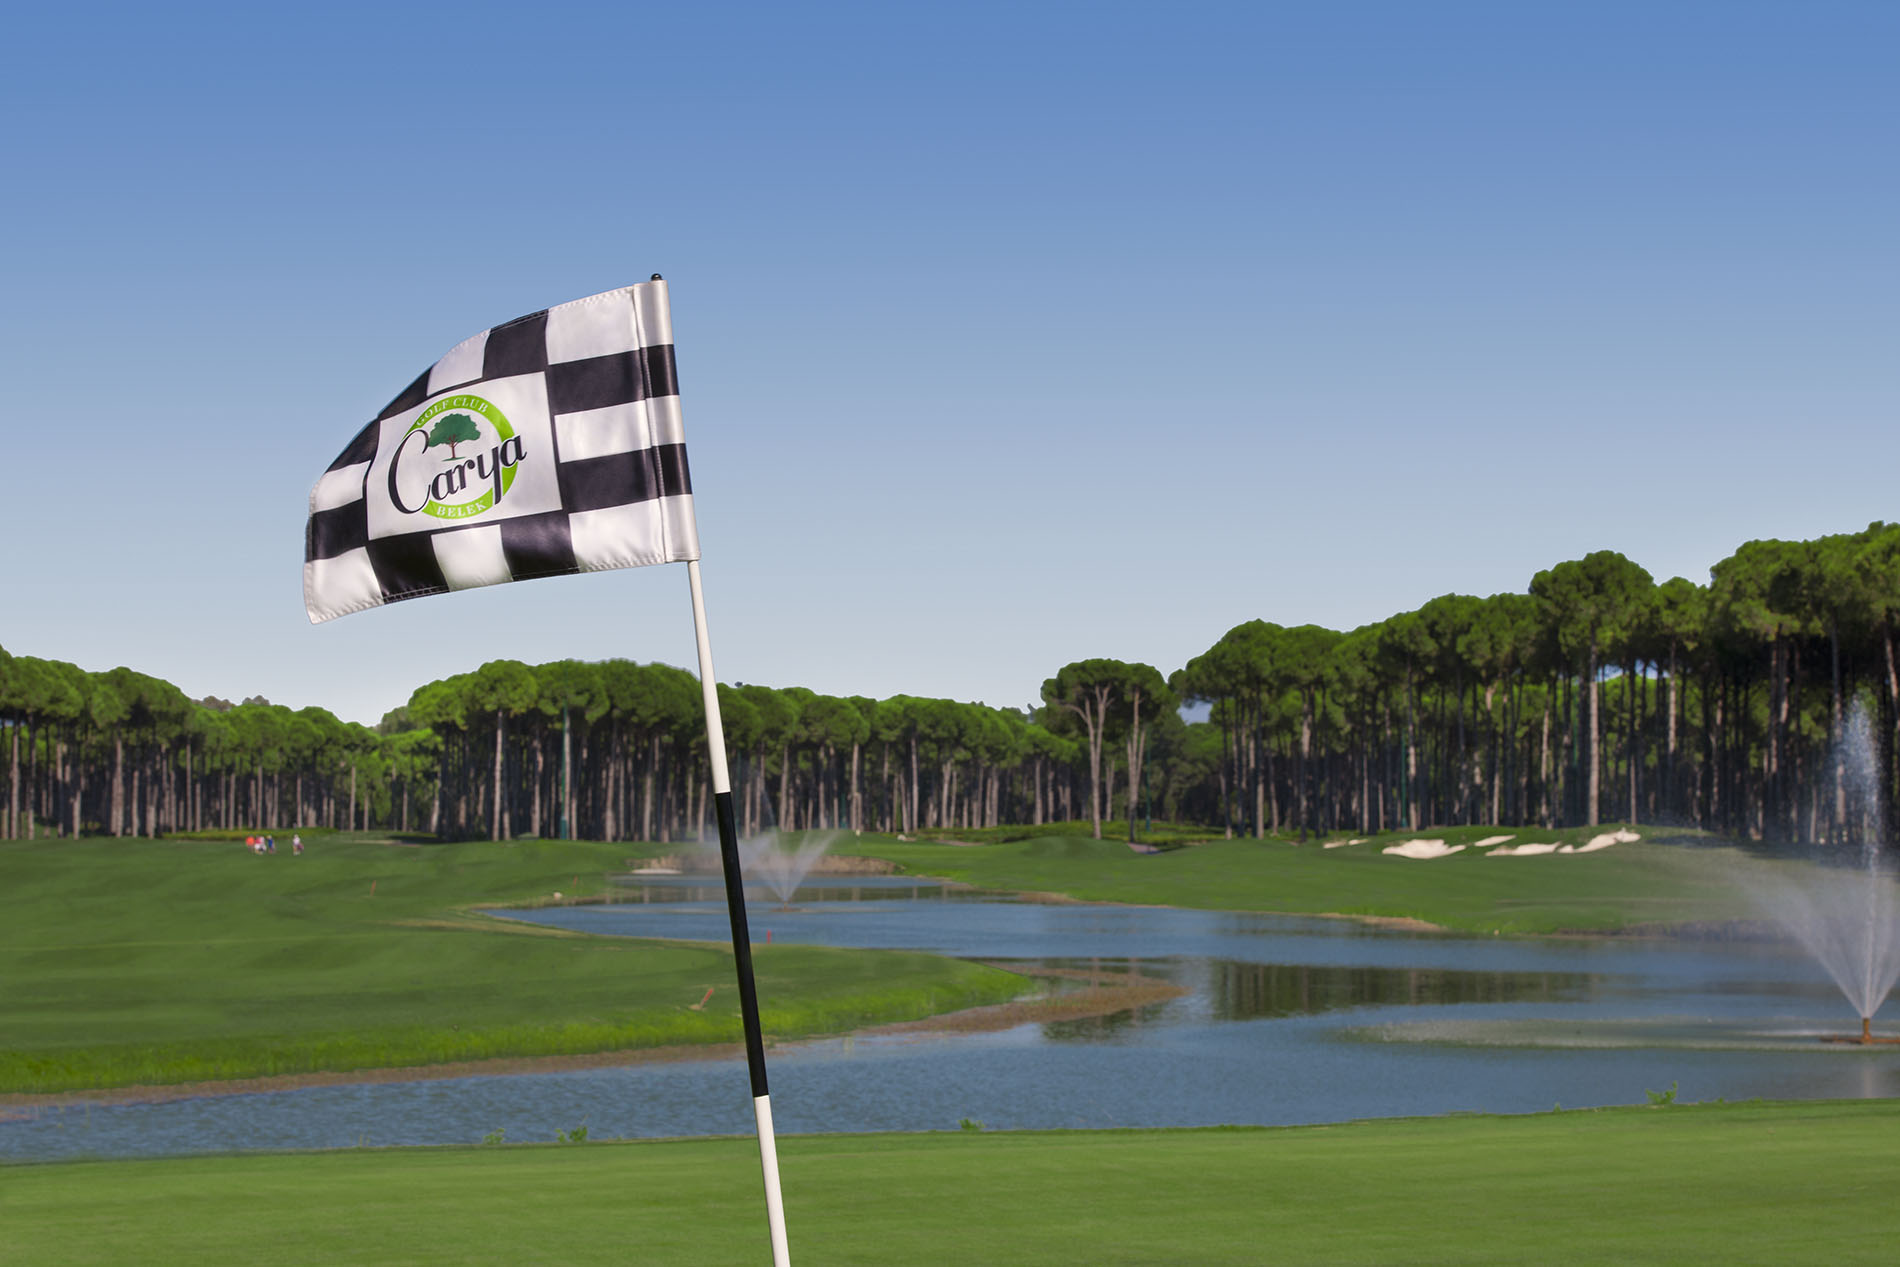 Course Updates for Overseeding & Turkish Airlines Open